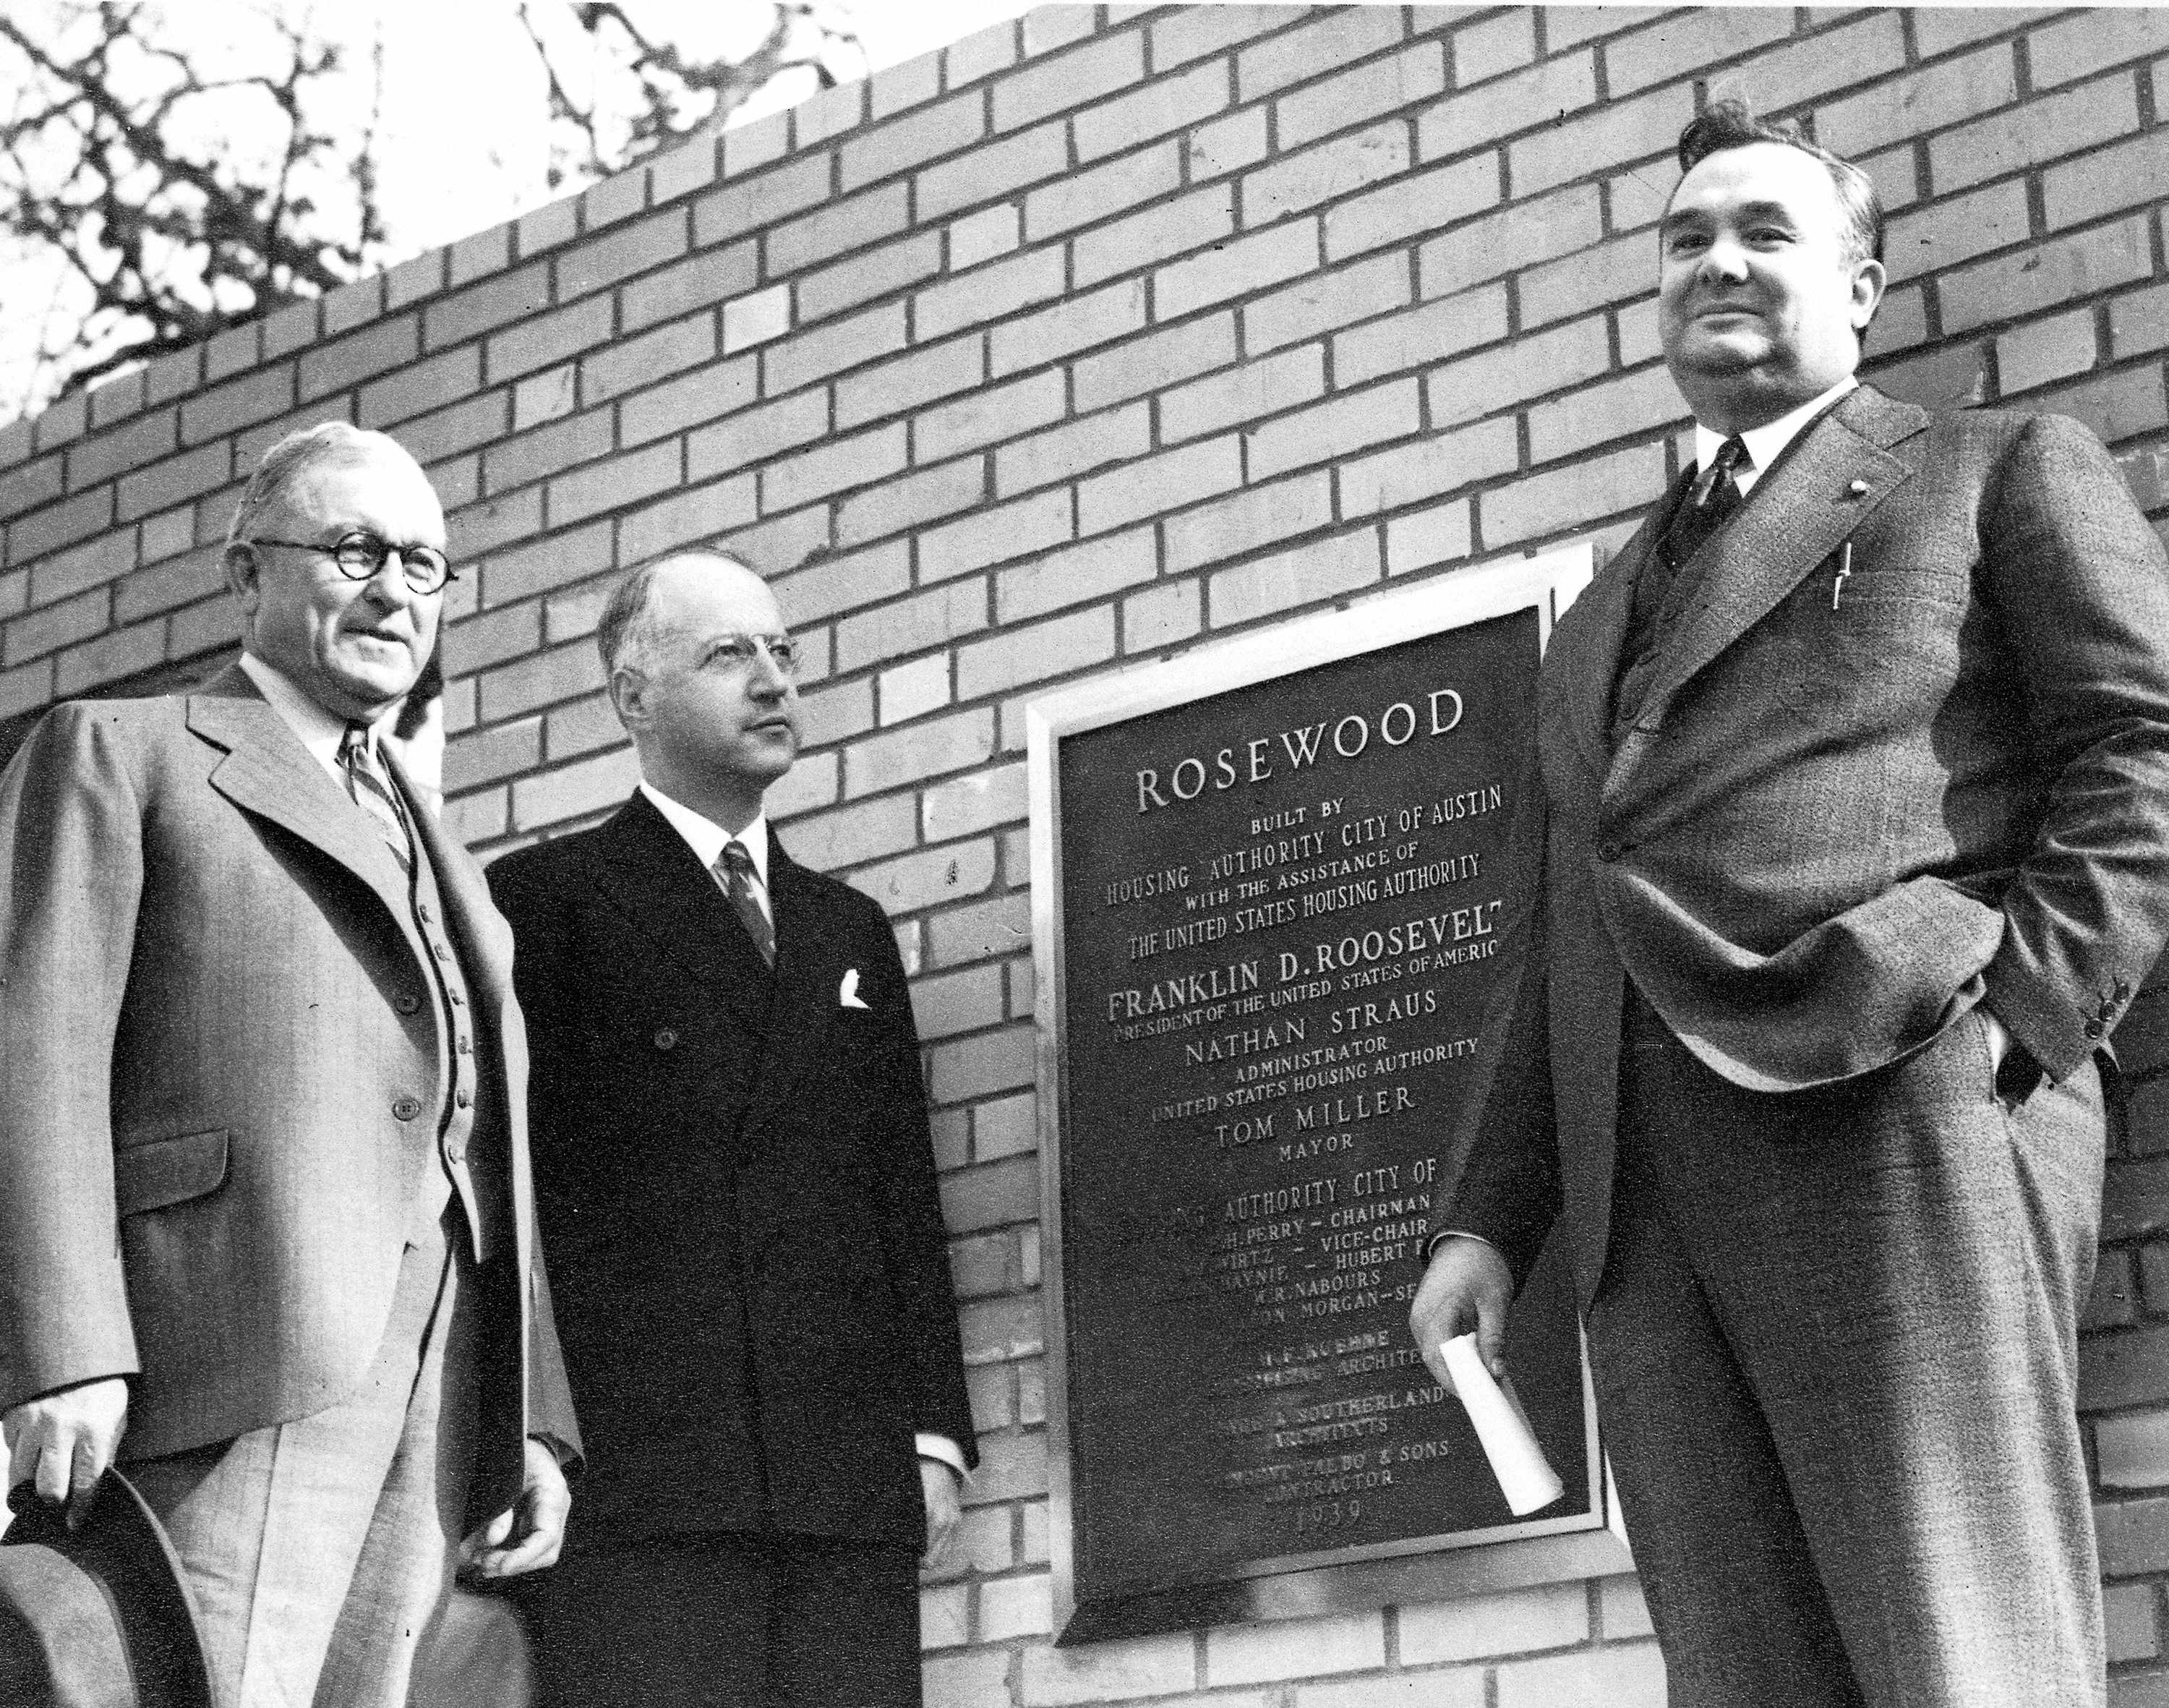 Dedication of Rosewood Courts, 3/1/1939. L to R:                 E.H. Perry, Nathan Straus, Tom Miller